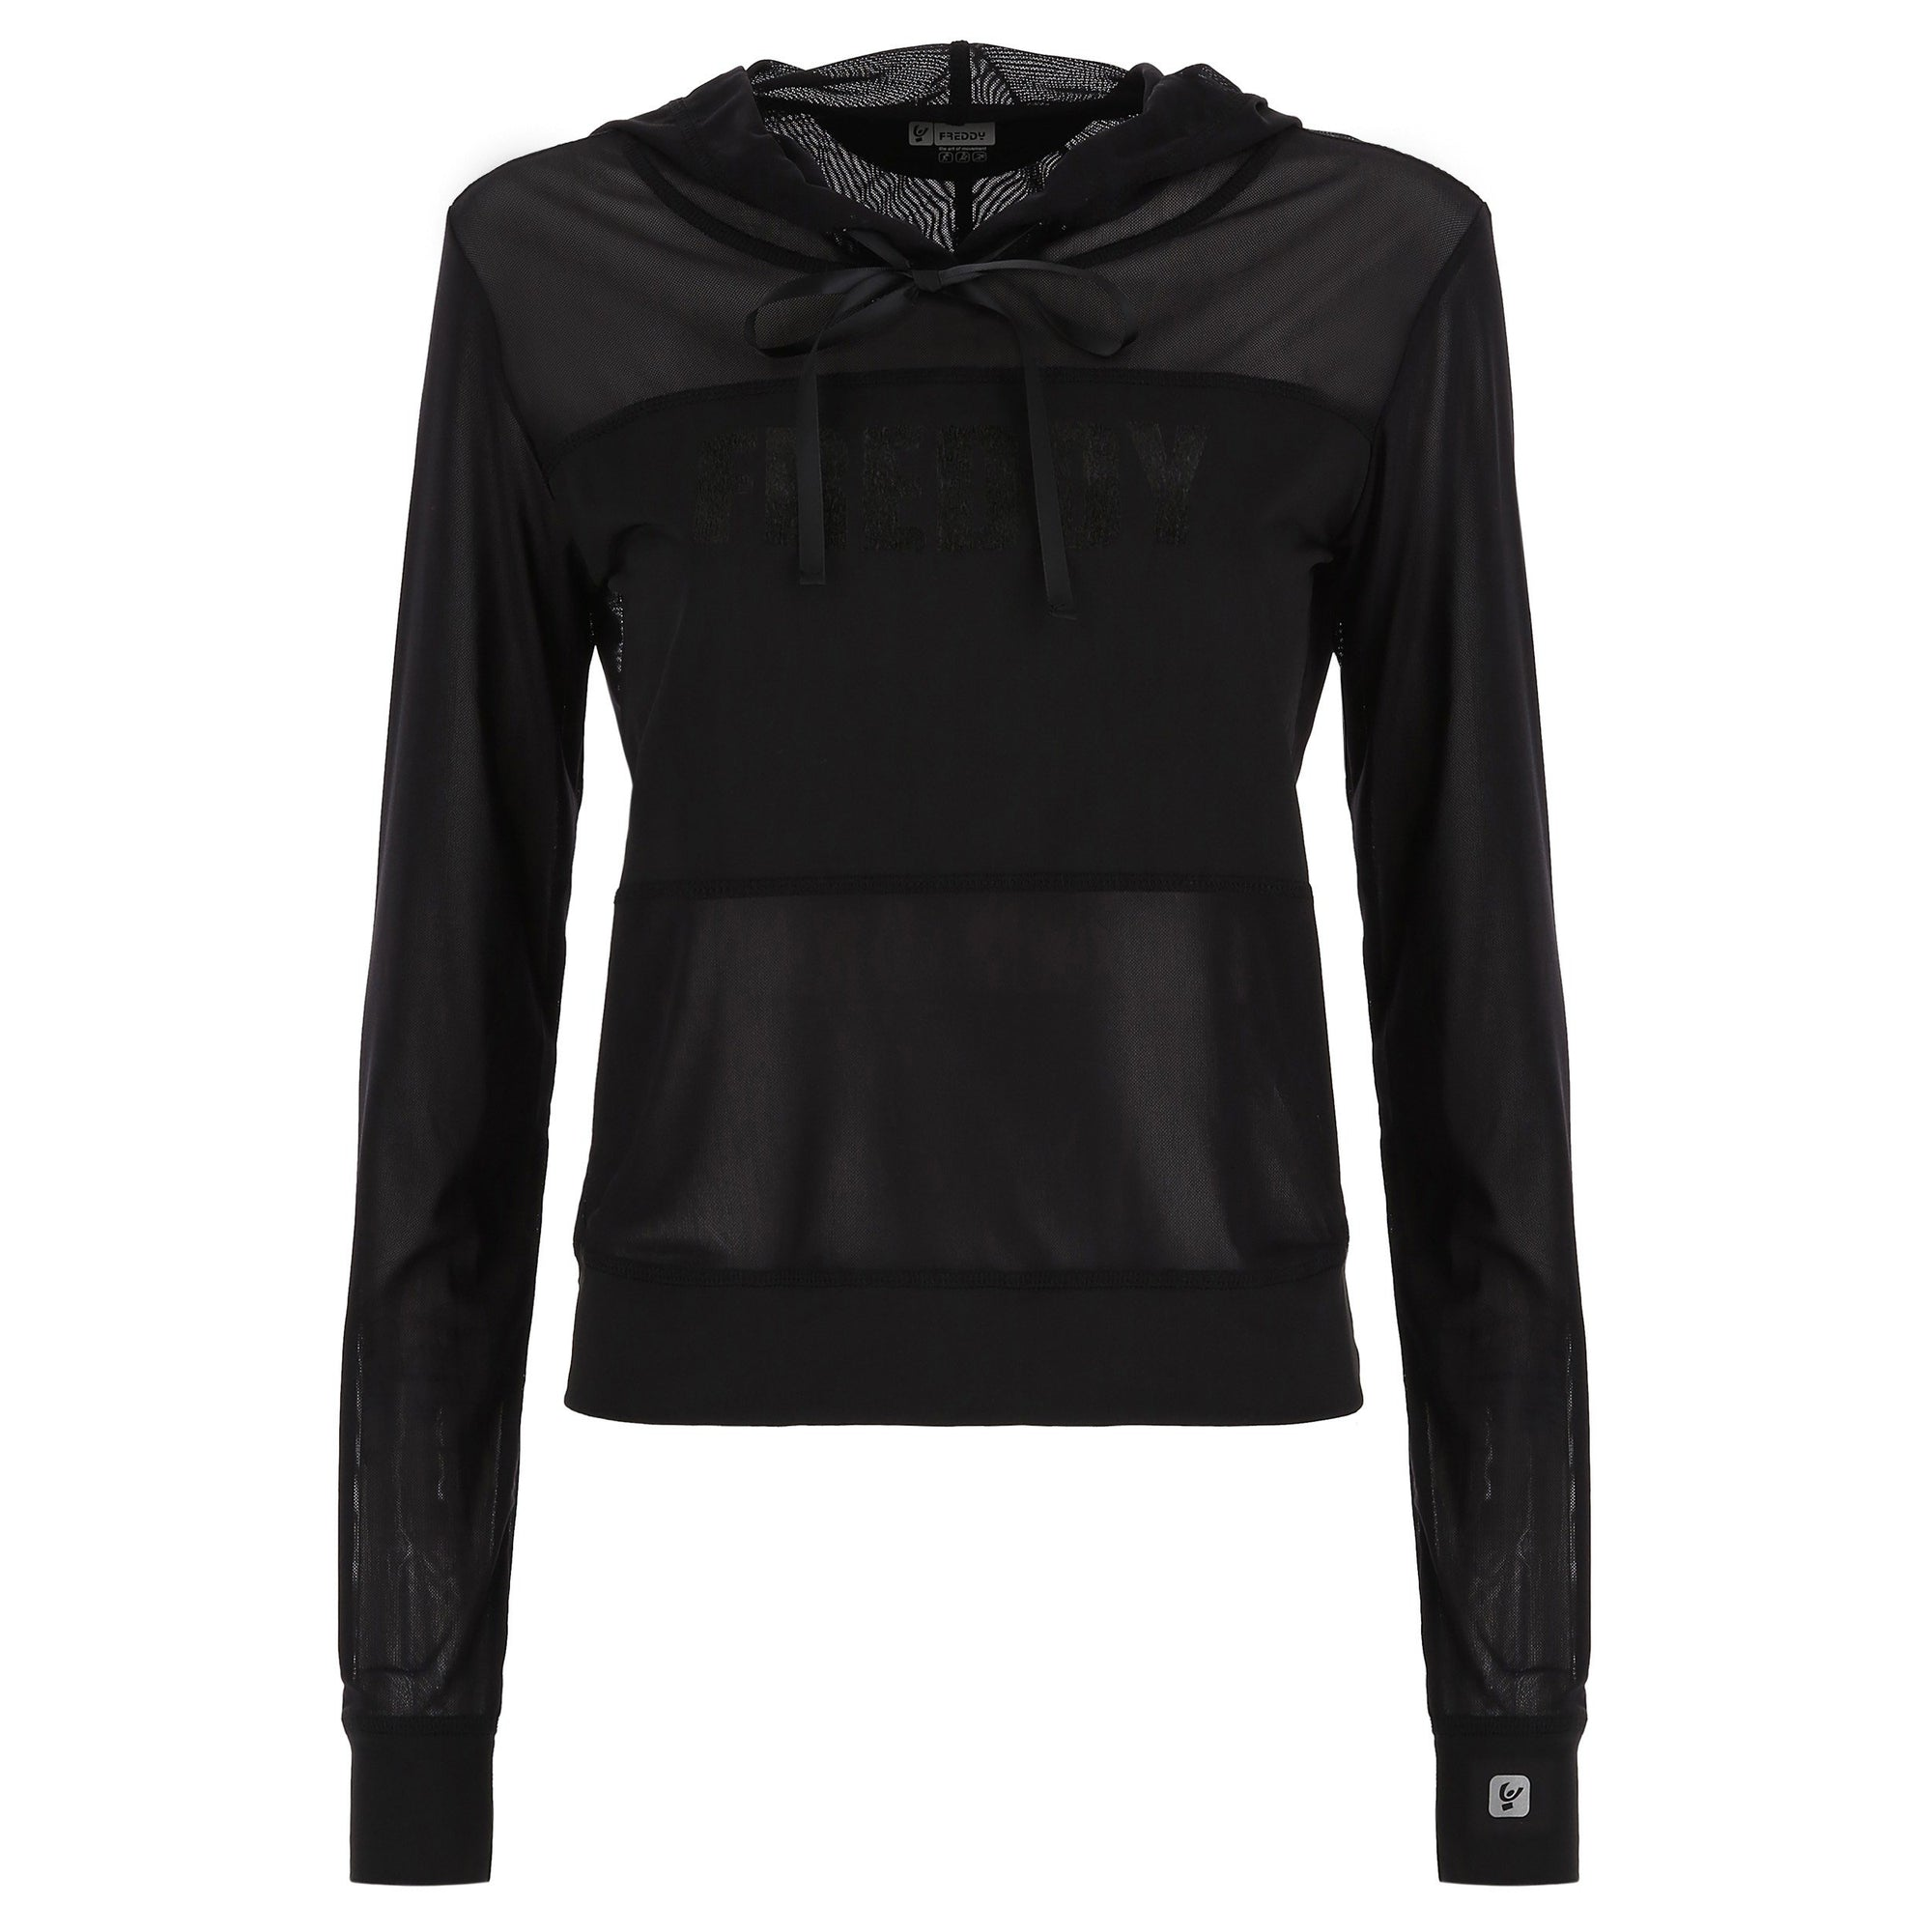 BLACK ACTIVE MESH LONG SLEEVE HOODED TSHIRT